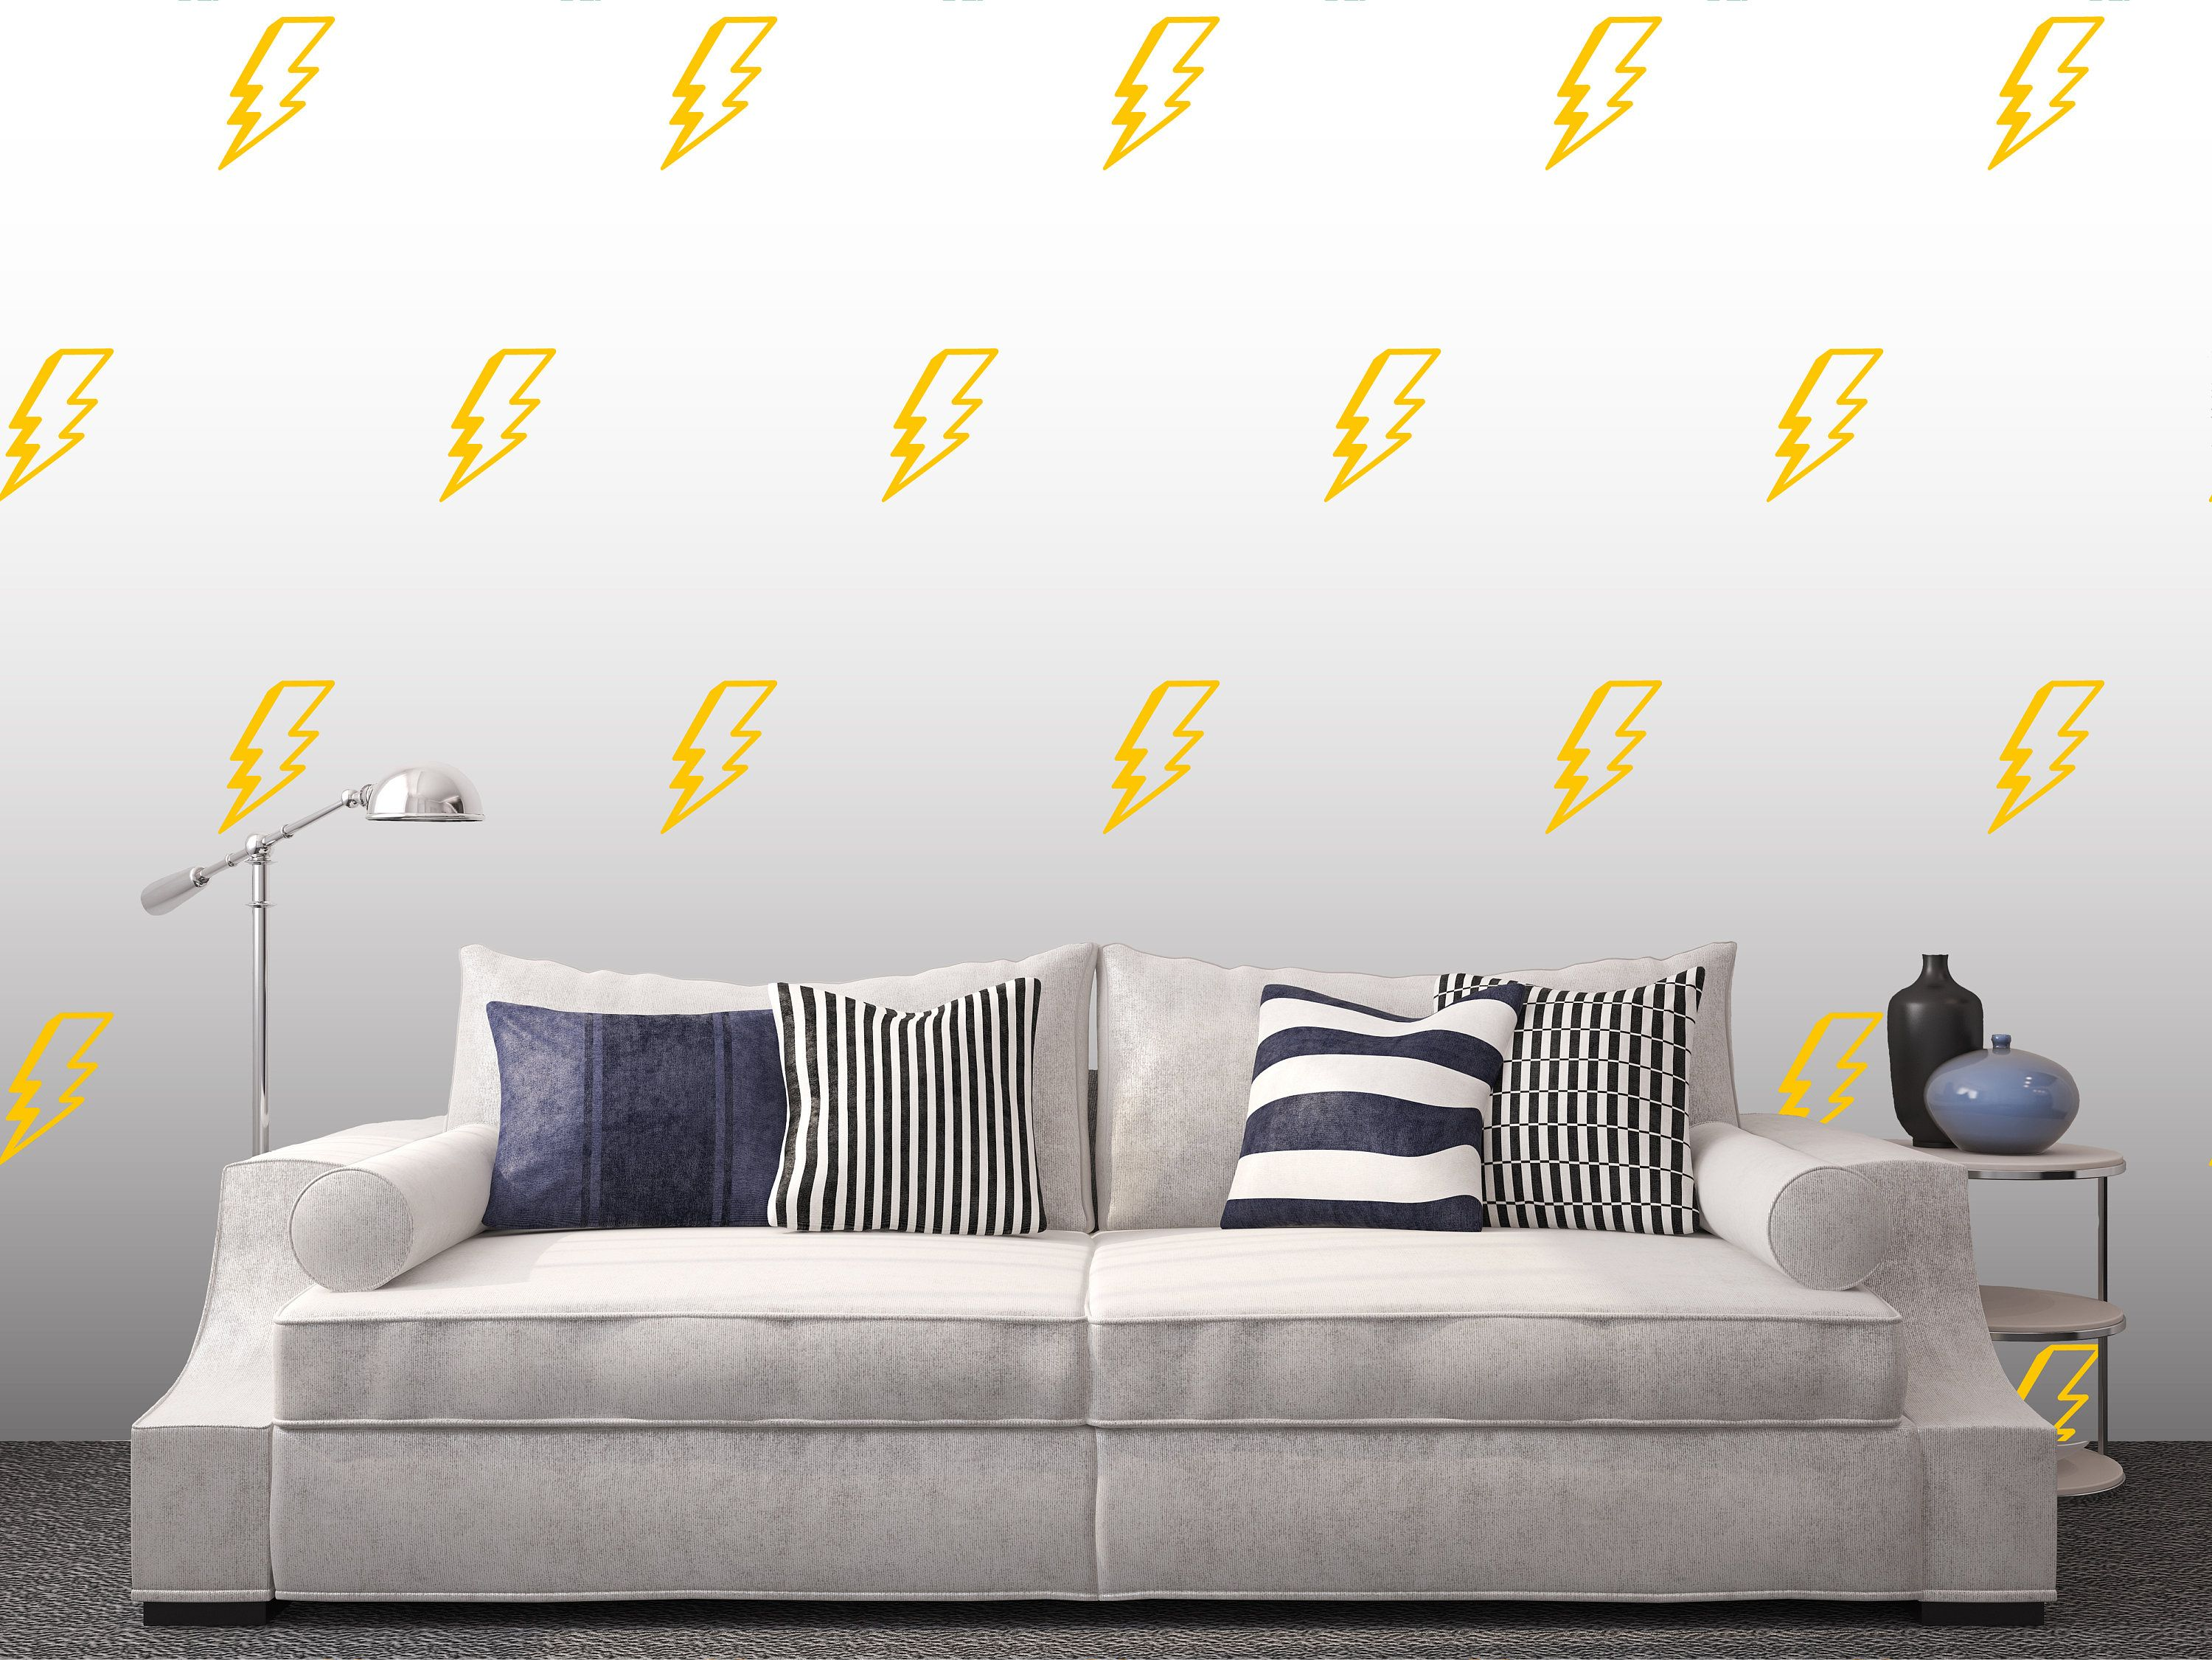 Lightning Bolt Wall Decal Electricity Pattern Ornament Sticker Etsy In 2020 Wall Decals Wall Home Decor #wall #decor #stickers #living #room